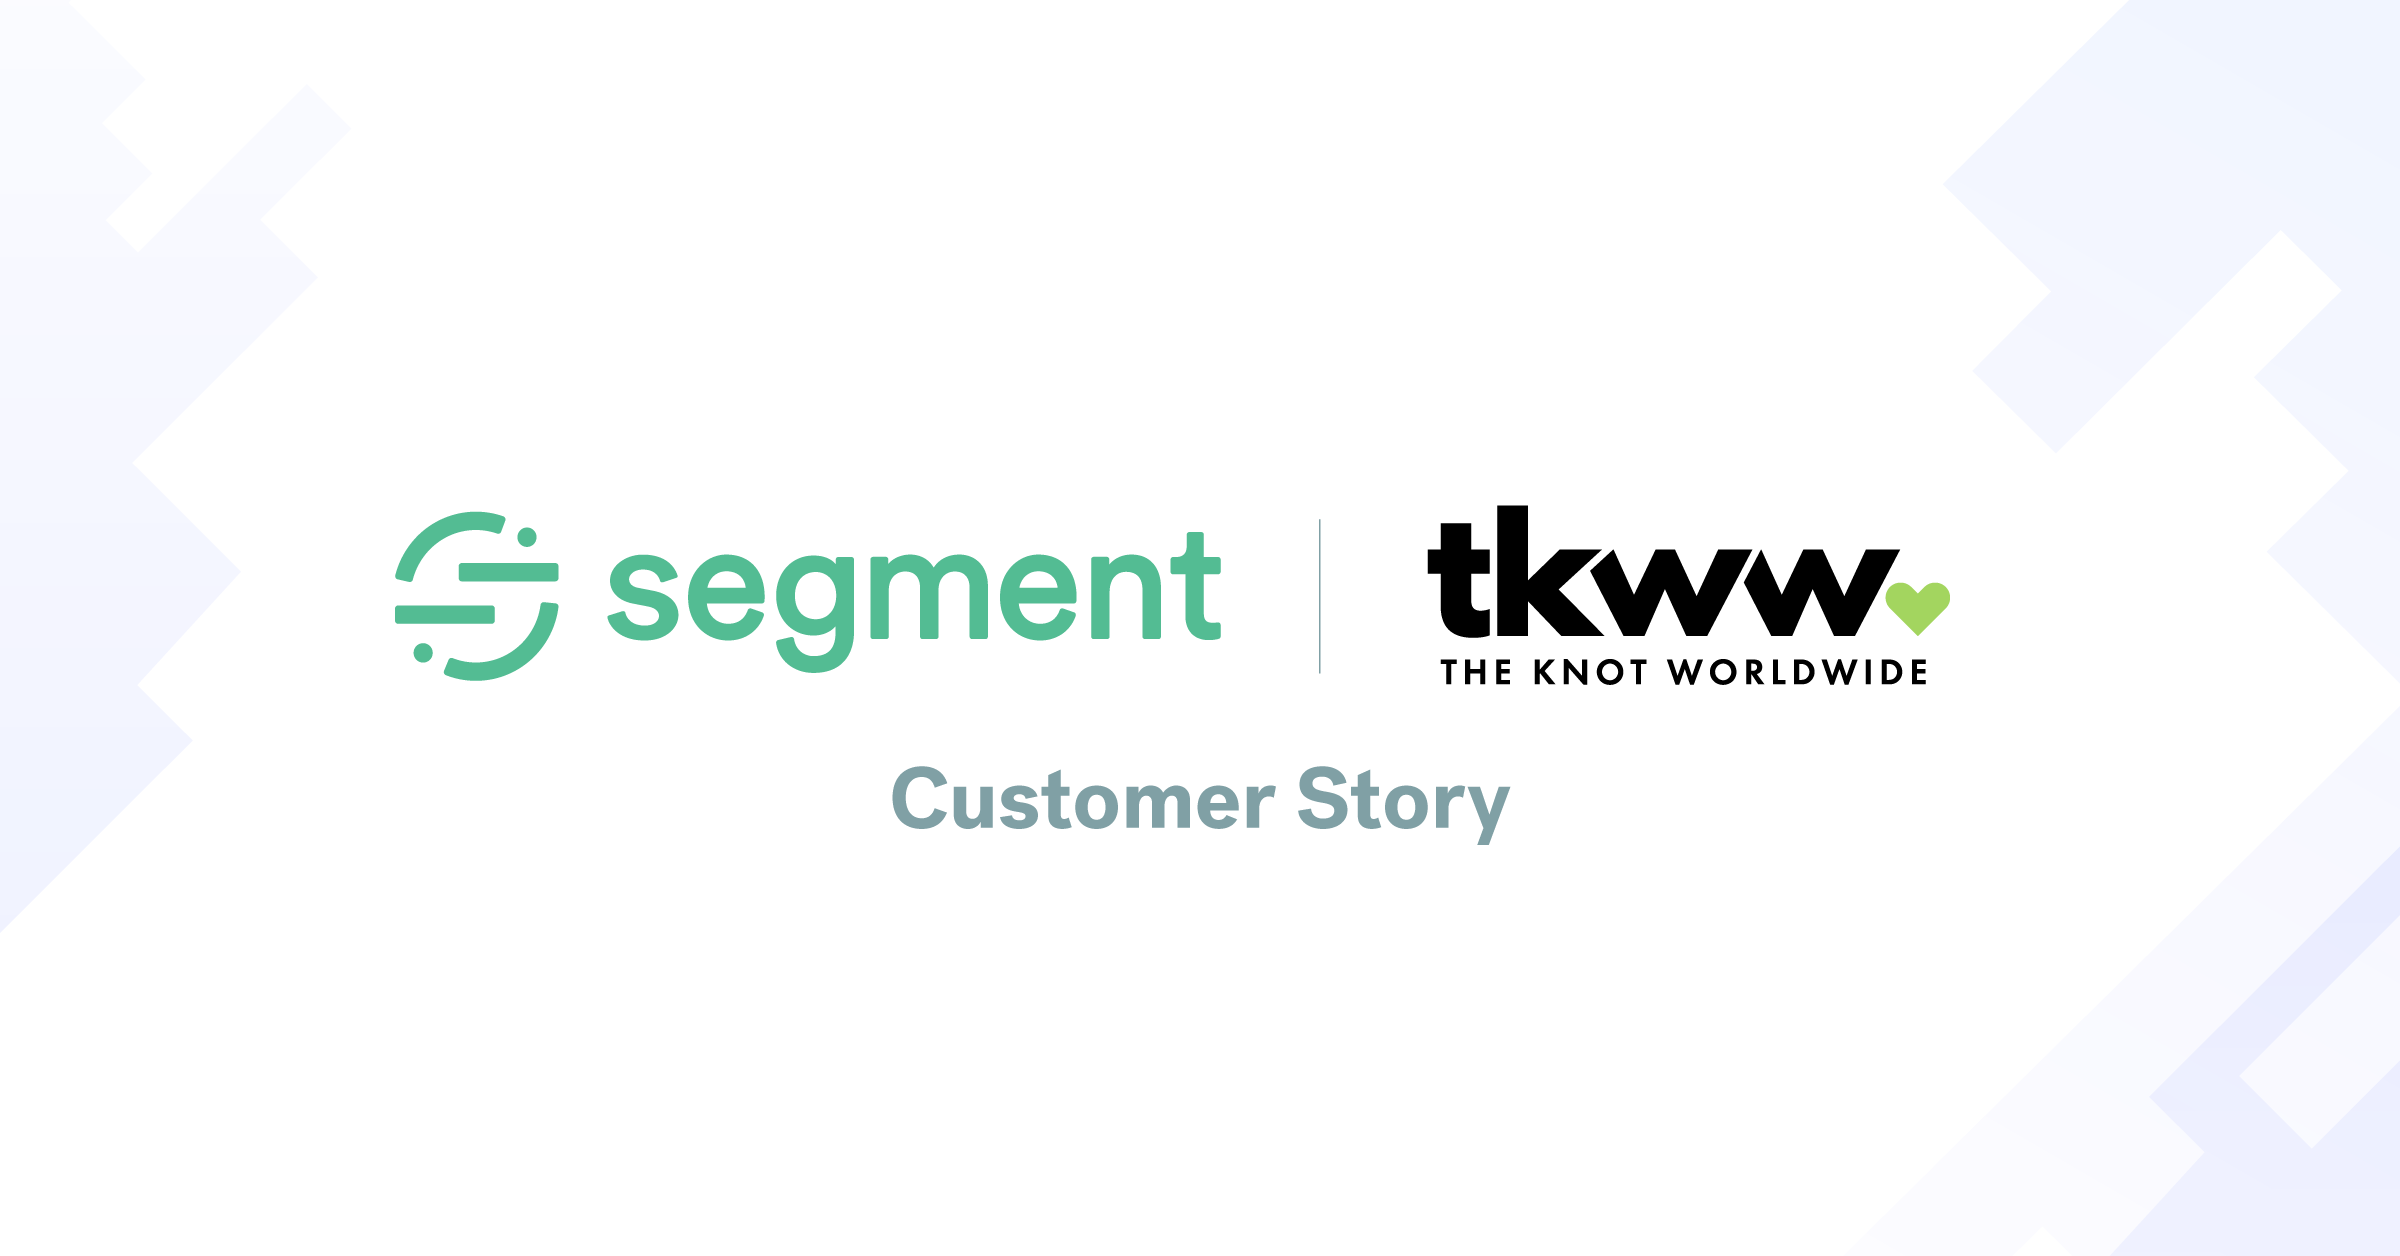 How The Knot Worldwide uses Segment data to guide couples on their personal journey